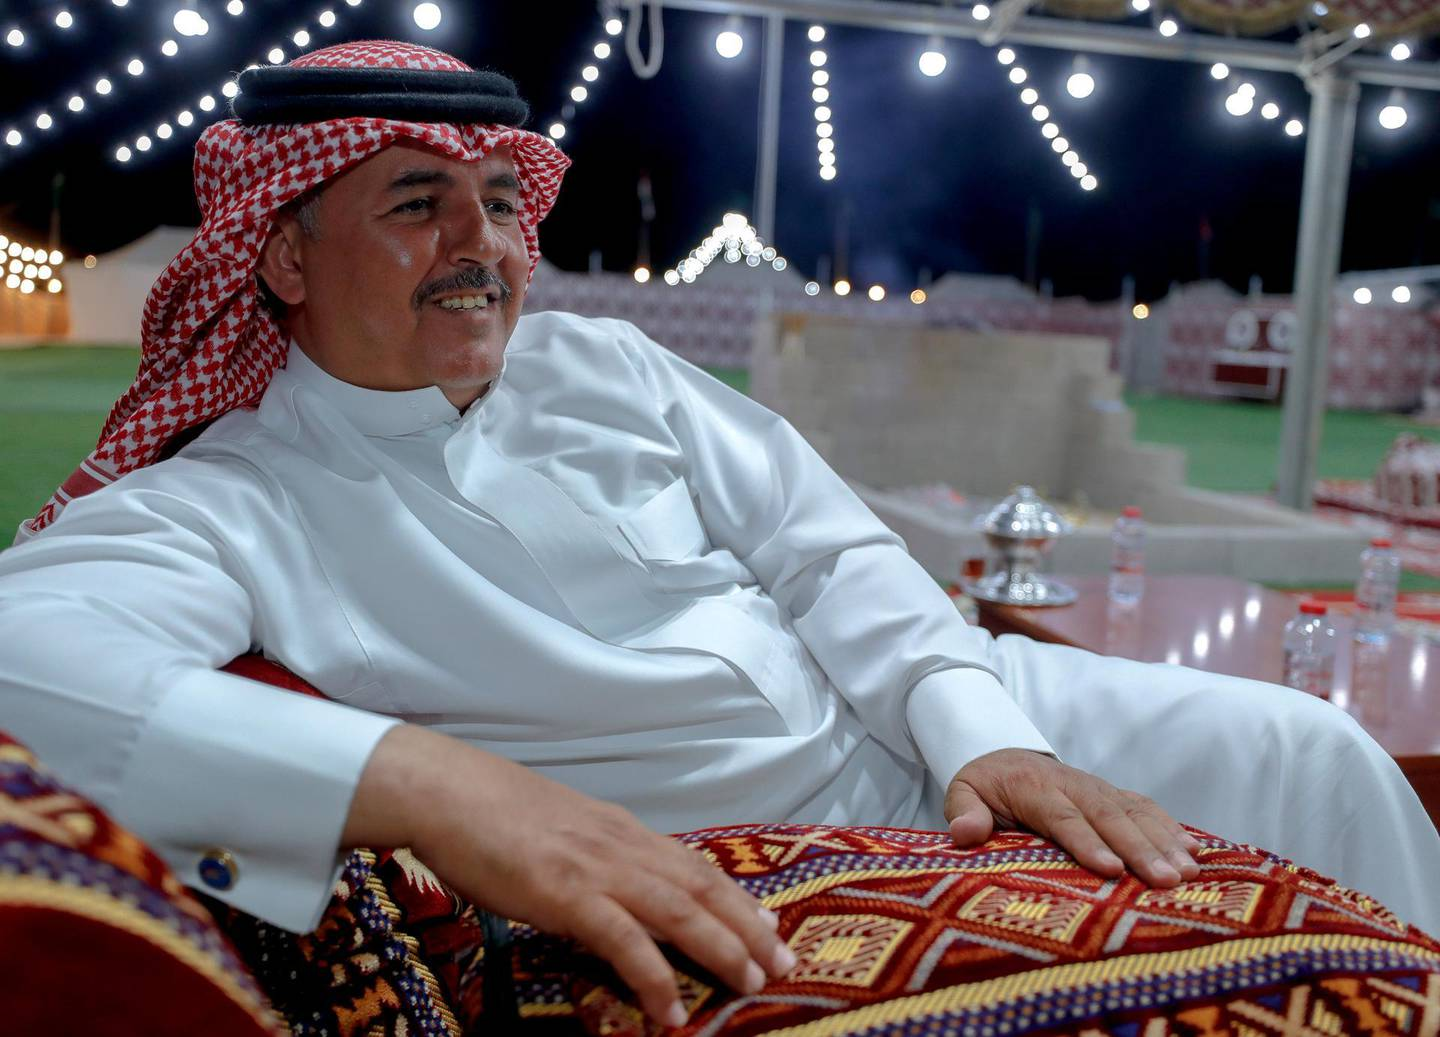 Abu Dhabi, United Arab Emirates, December 10, 2019.    ---Mohammed Fahd Al Ulayan, 48, from Saudi Arabia relaxes at his tent at the Al Dhafra Festival in Abu Dhabi.Victor Besa/The NationalSection:  NAReporter:  Anna Zacharias